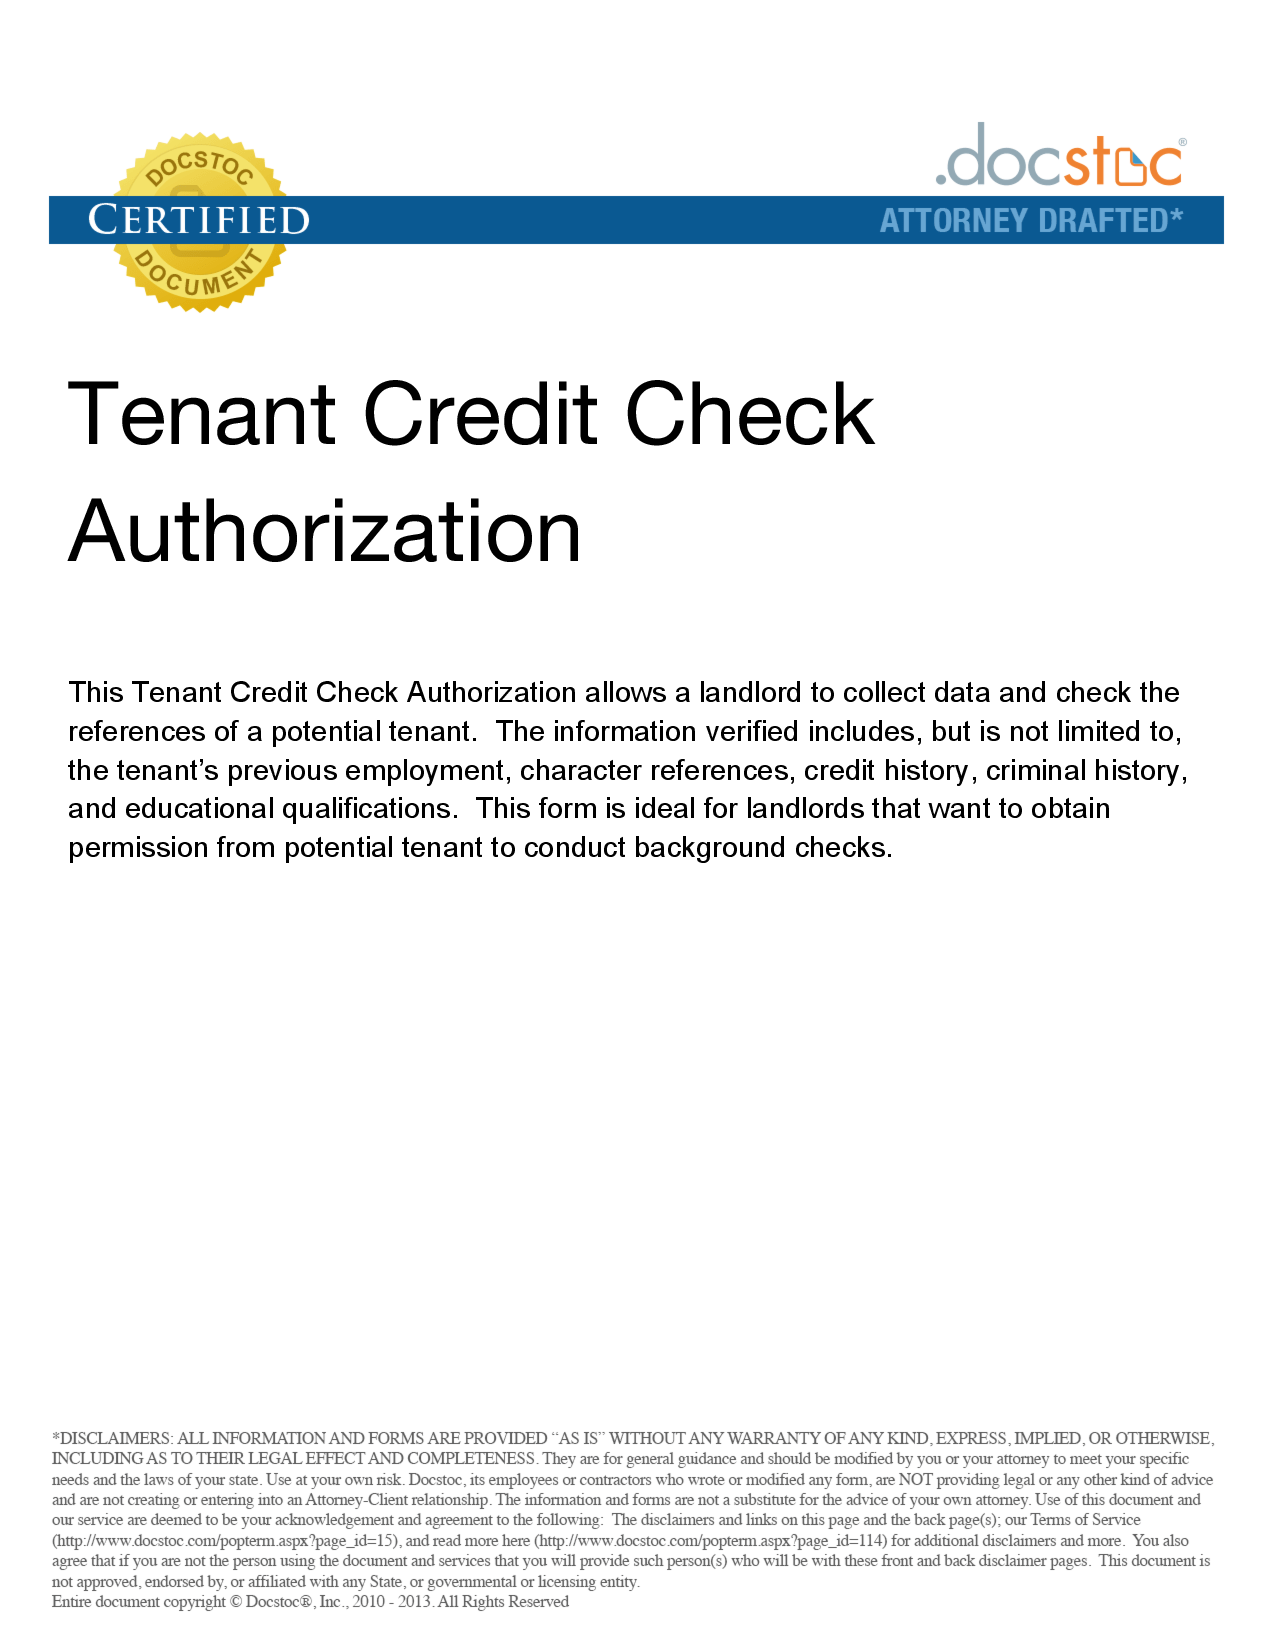 Background Check Authorization Form Landlord